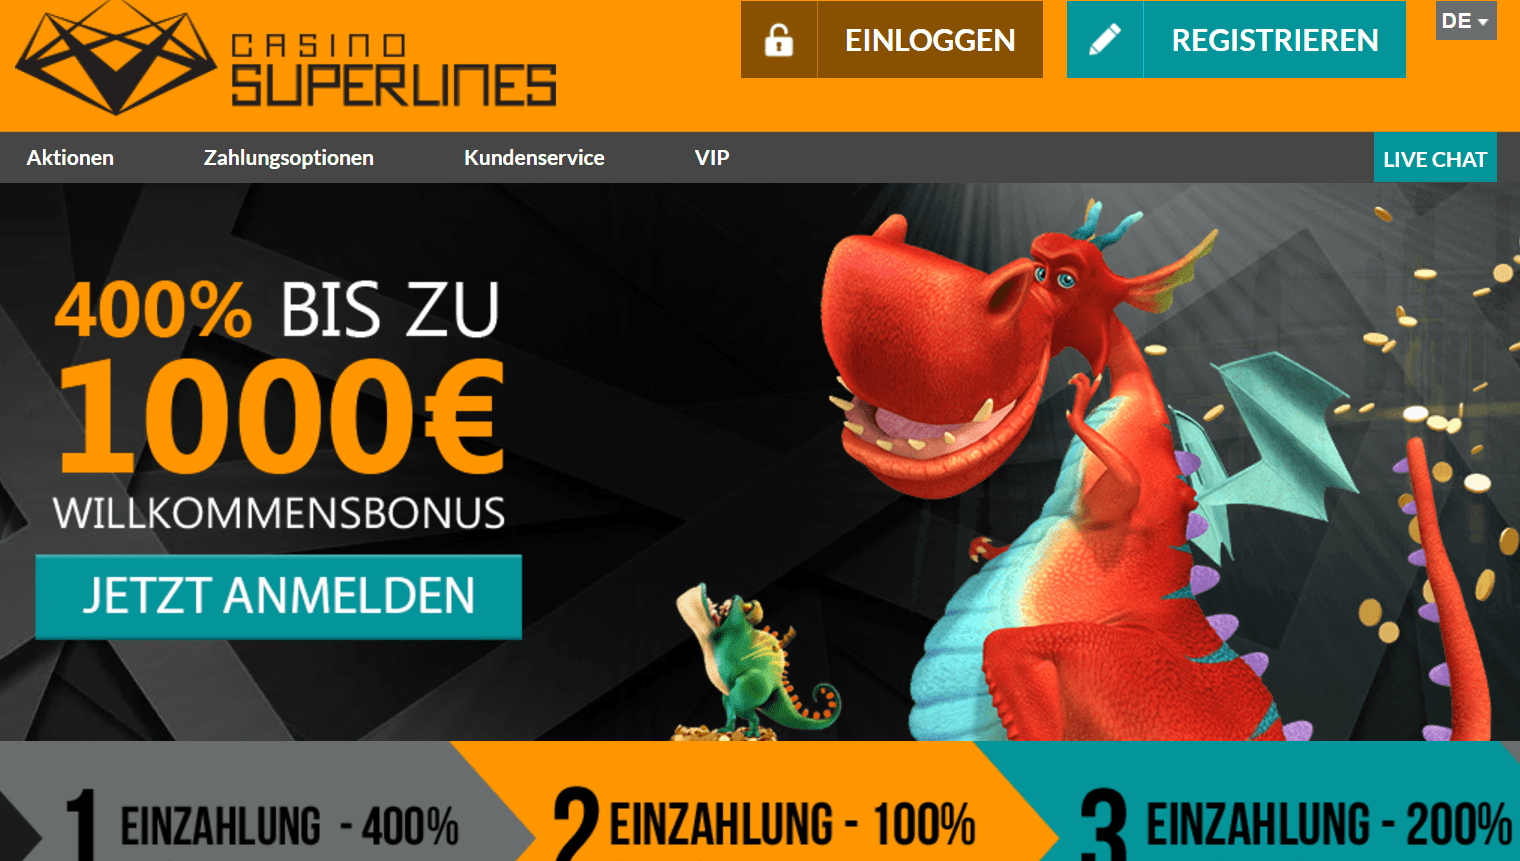 Casinosuperlines mit 400% Bonus